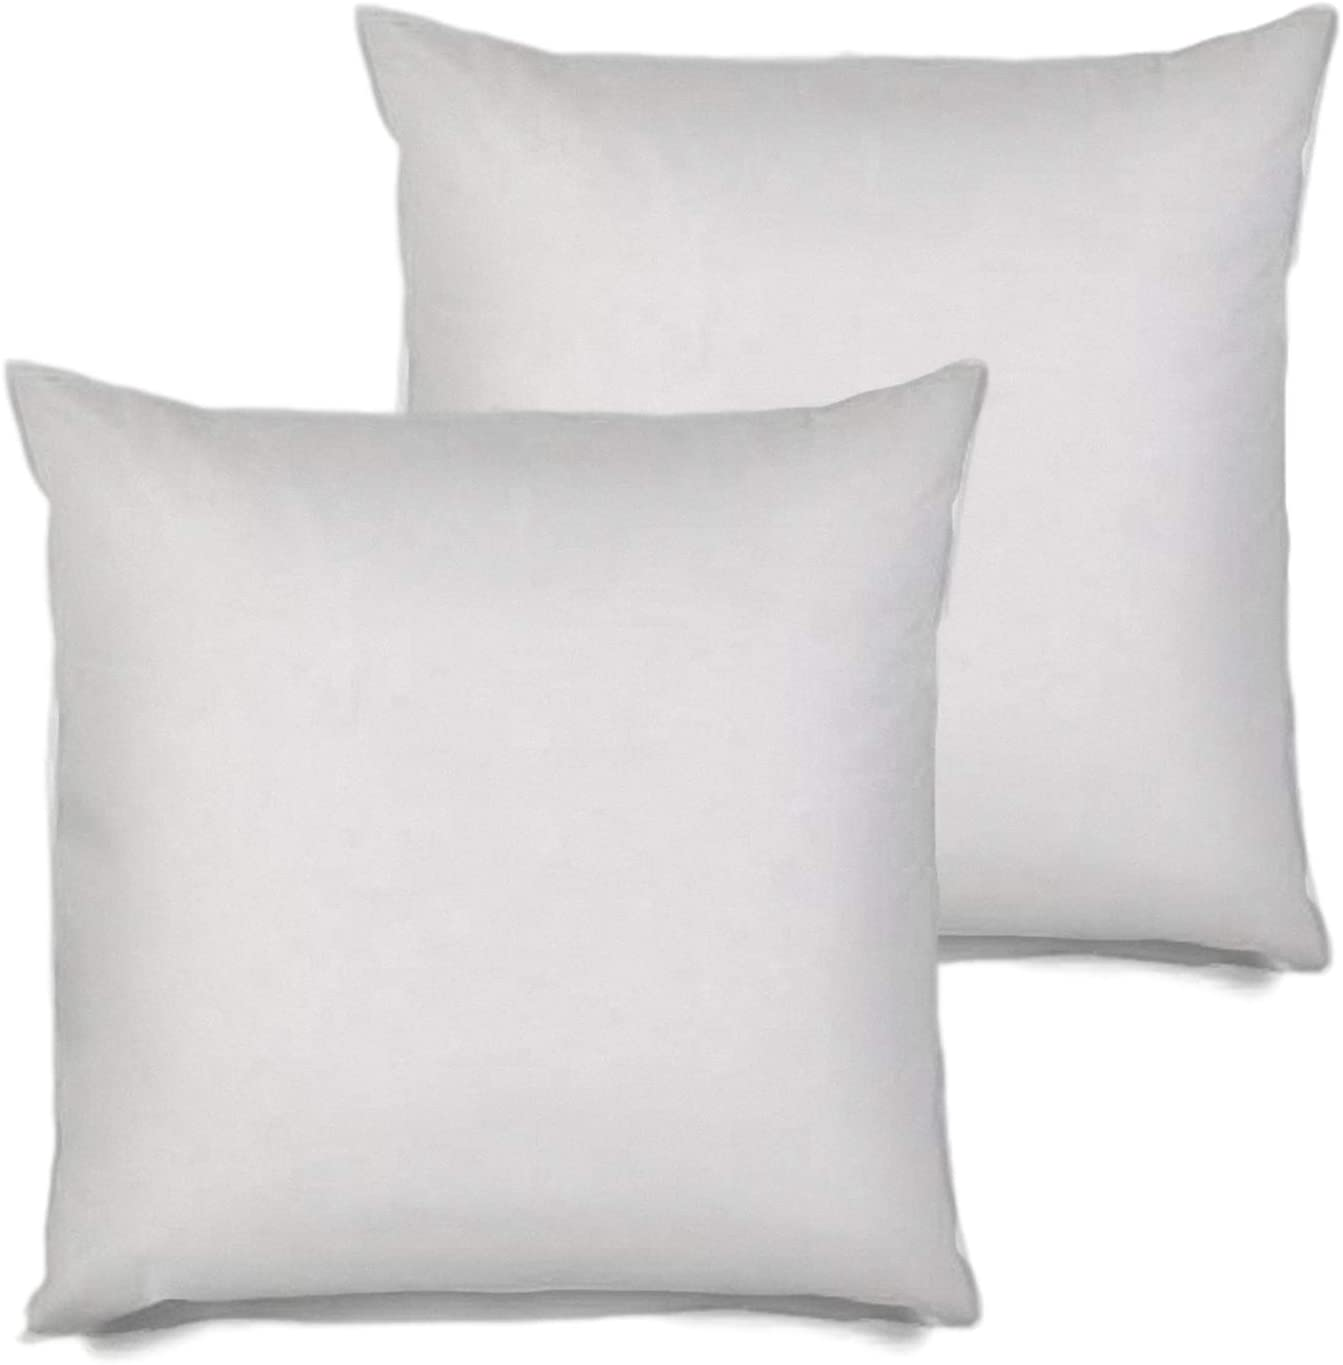 Amazon Com Msd 4 Pack Pillow Insert 22x22 Hypoallergenic Square Form Sham Stuffer Standard White Polyester Decorative Euro Throw Pillow Inserts For Sofa Bed Made In Usa Set Of 4 Machine